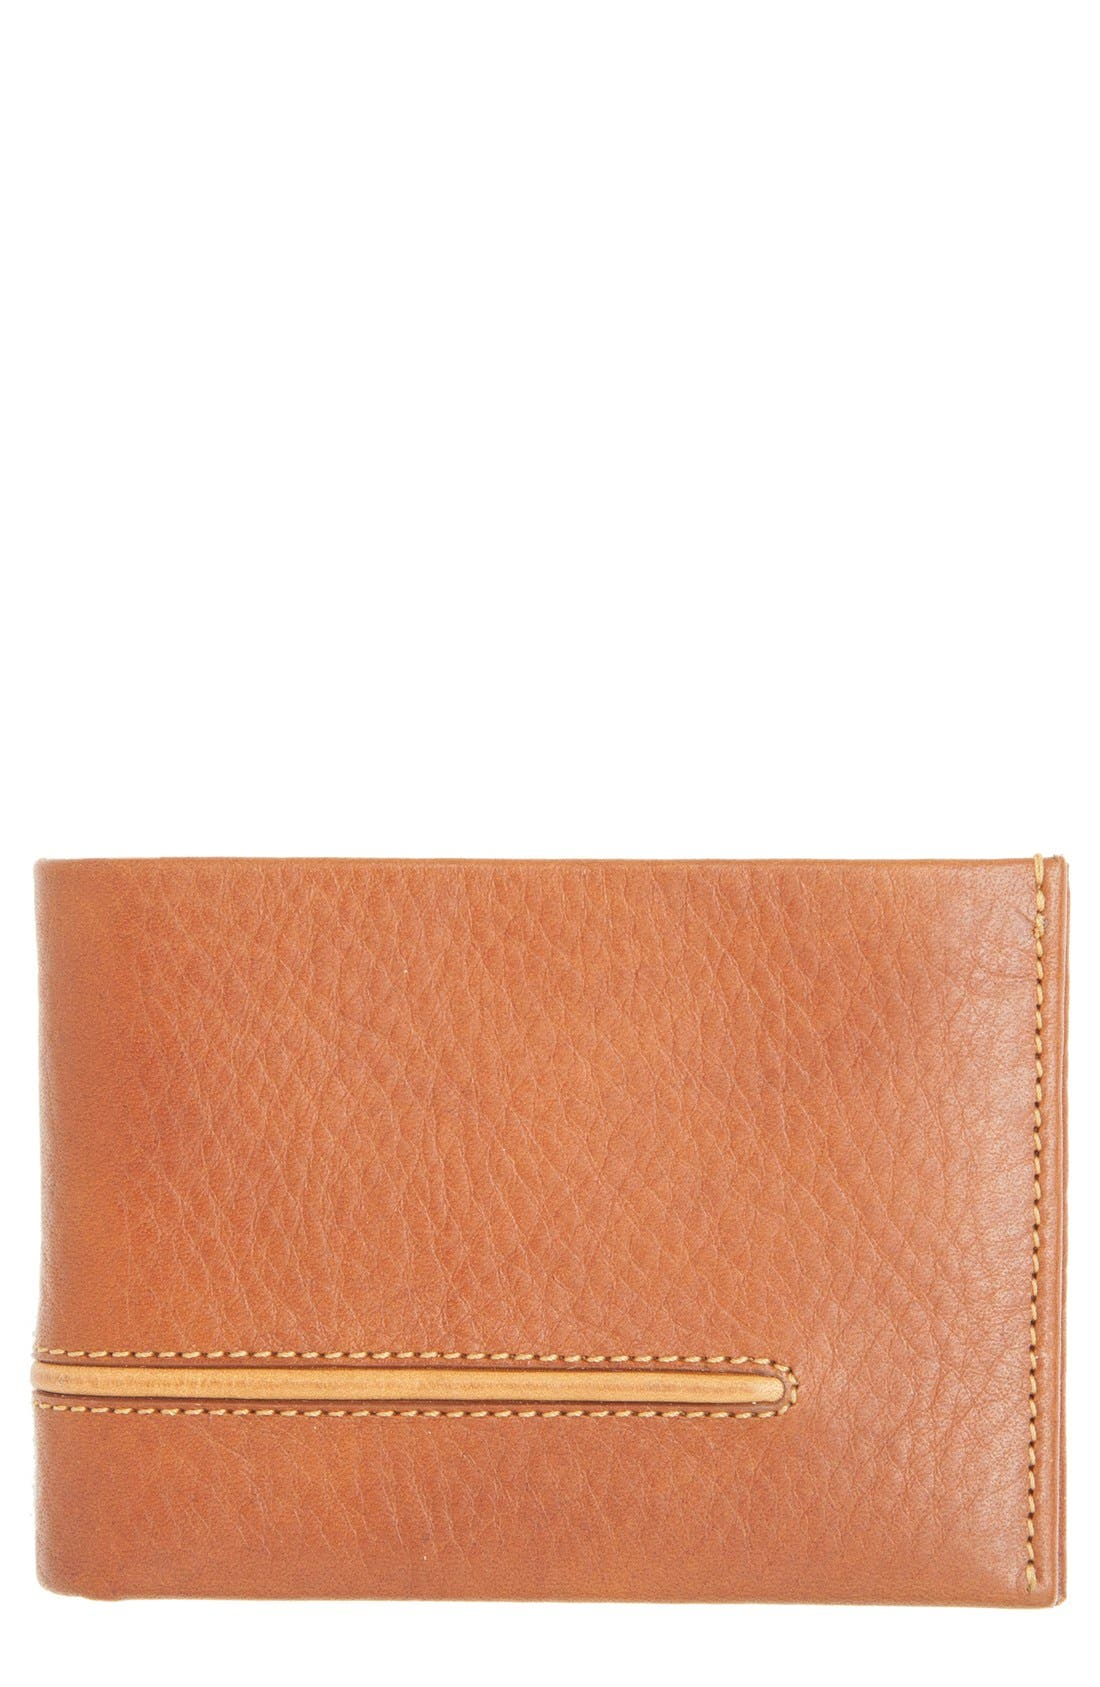 Leather L-Fold Wallet,                             Main thumbnail 1, color,